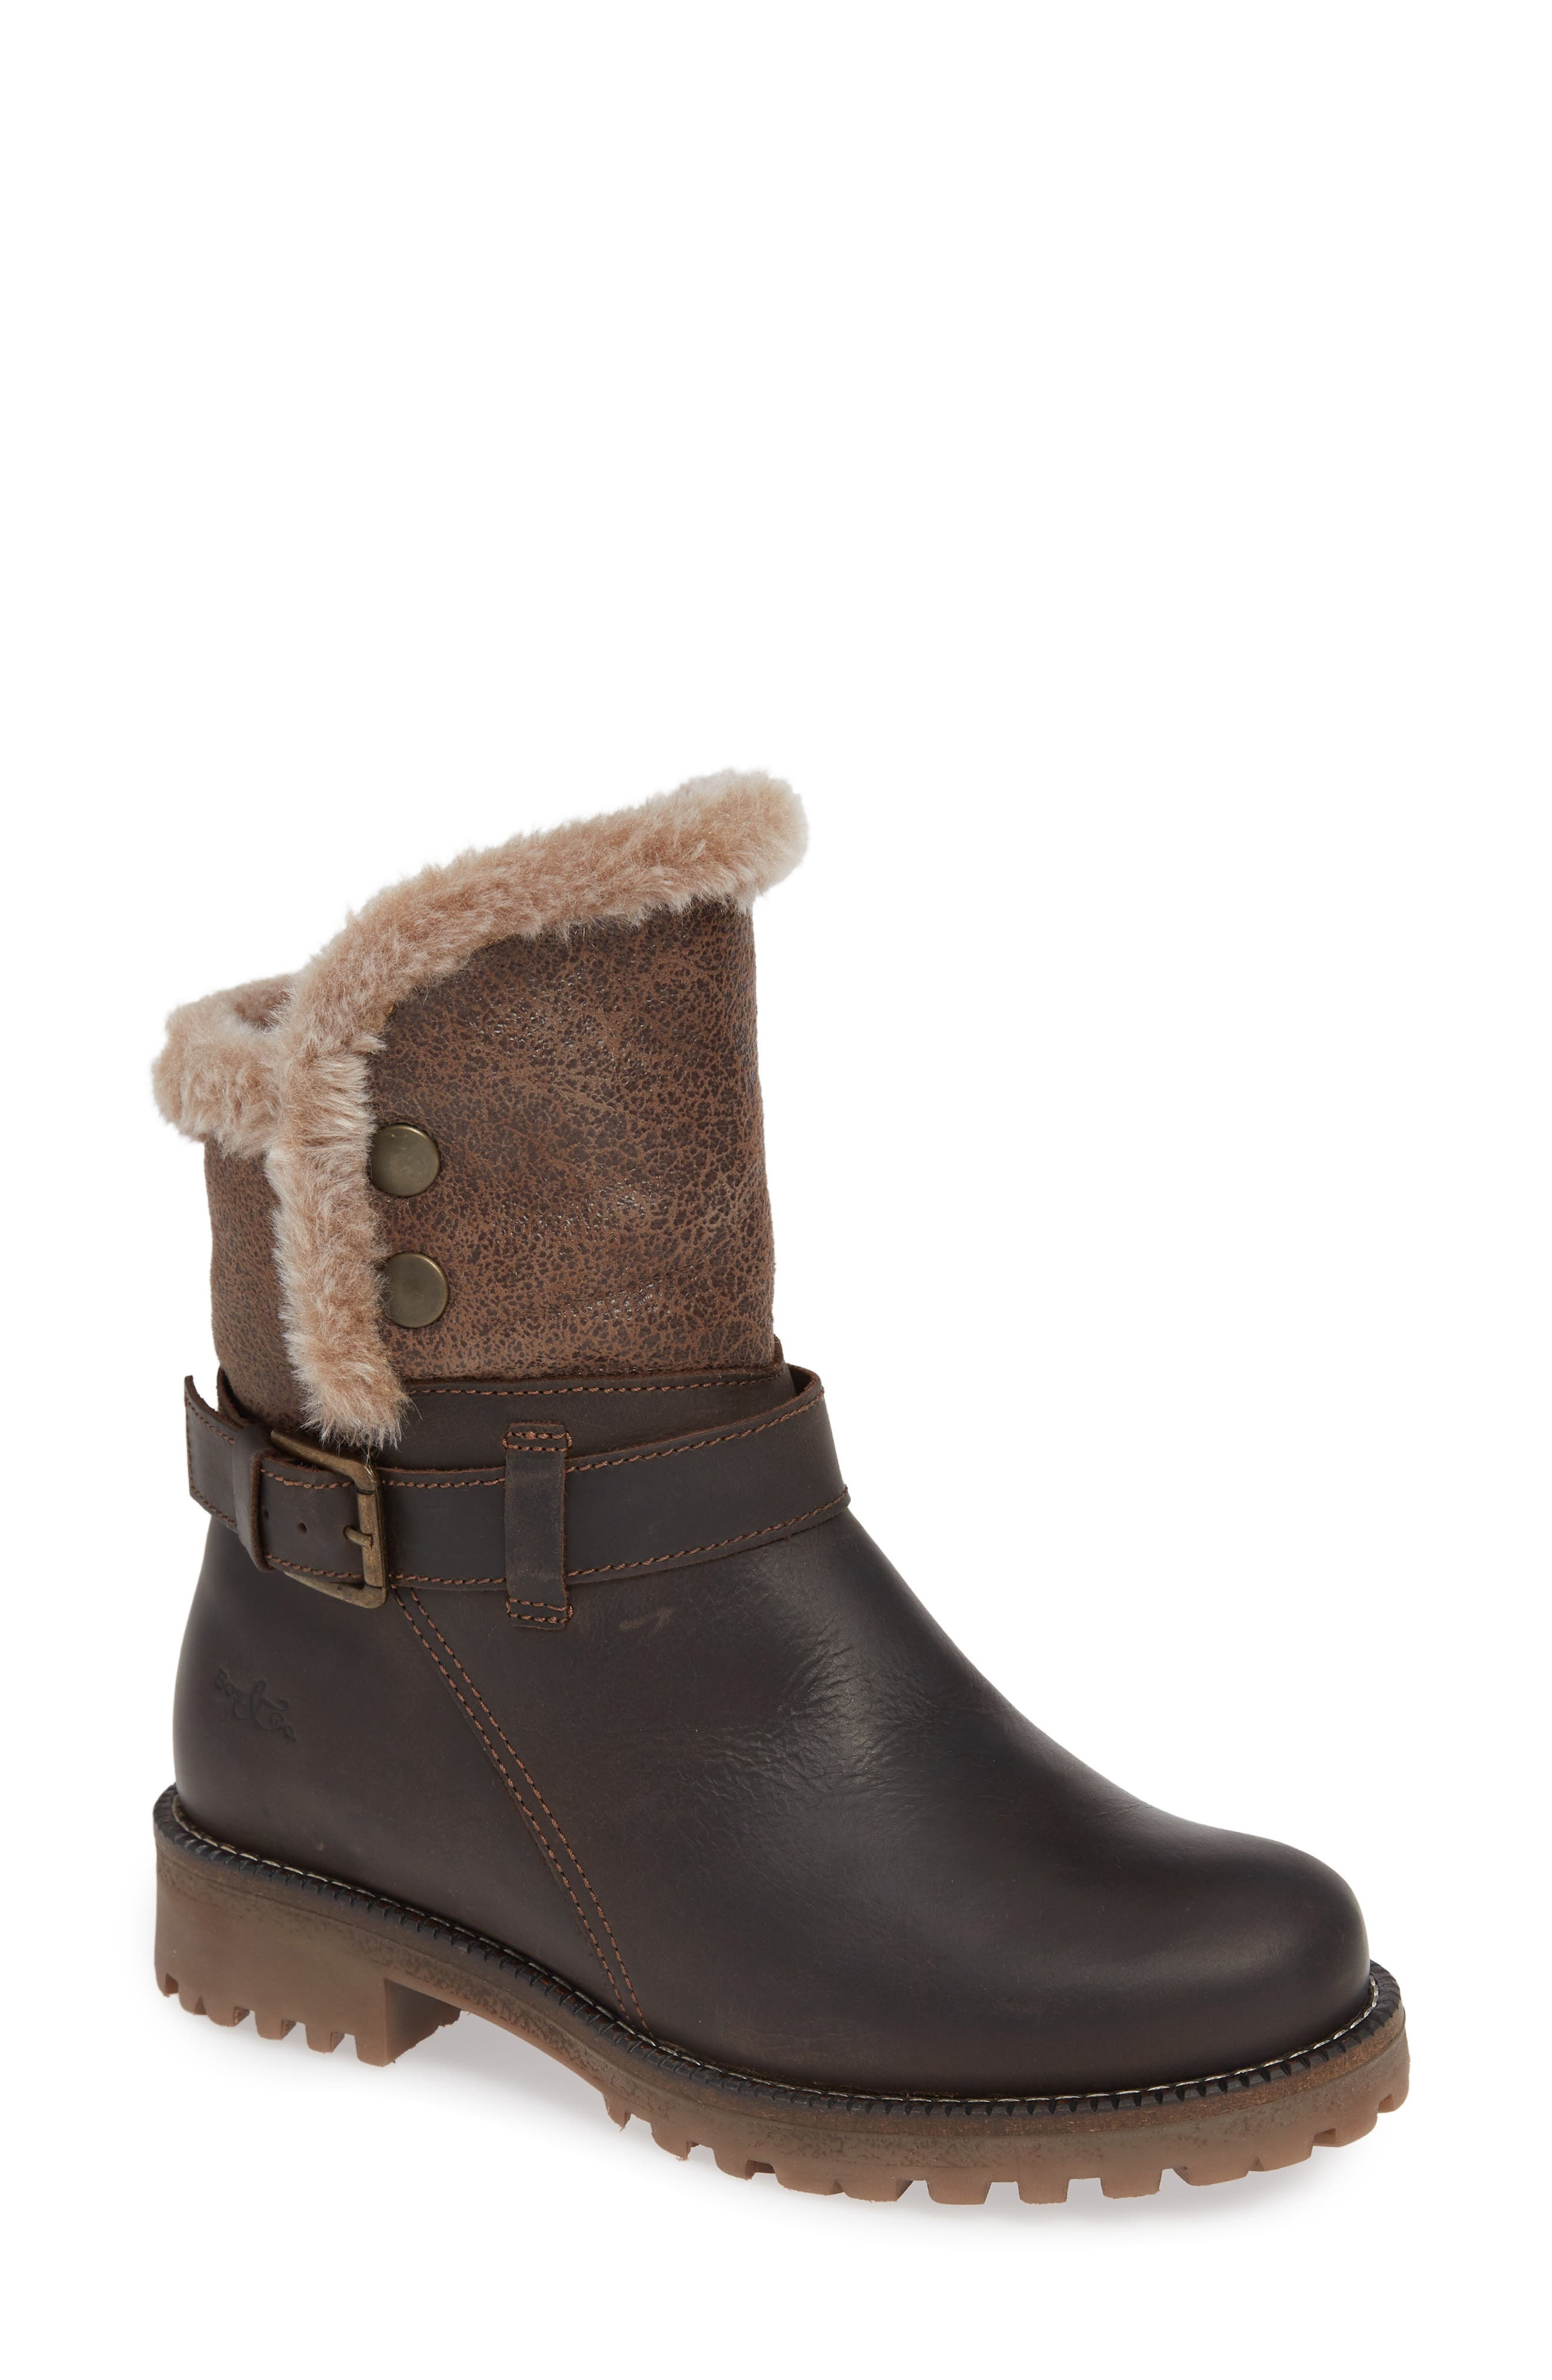 Bos. & Co. Cluster Faux Shearling Waterproof Boot - Brown